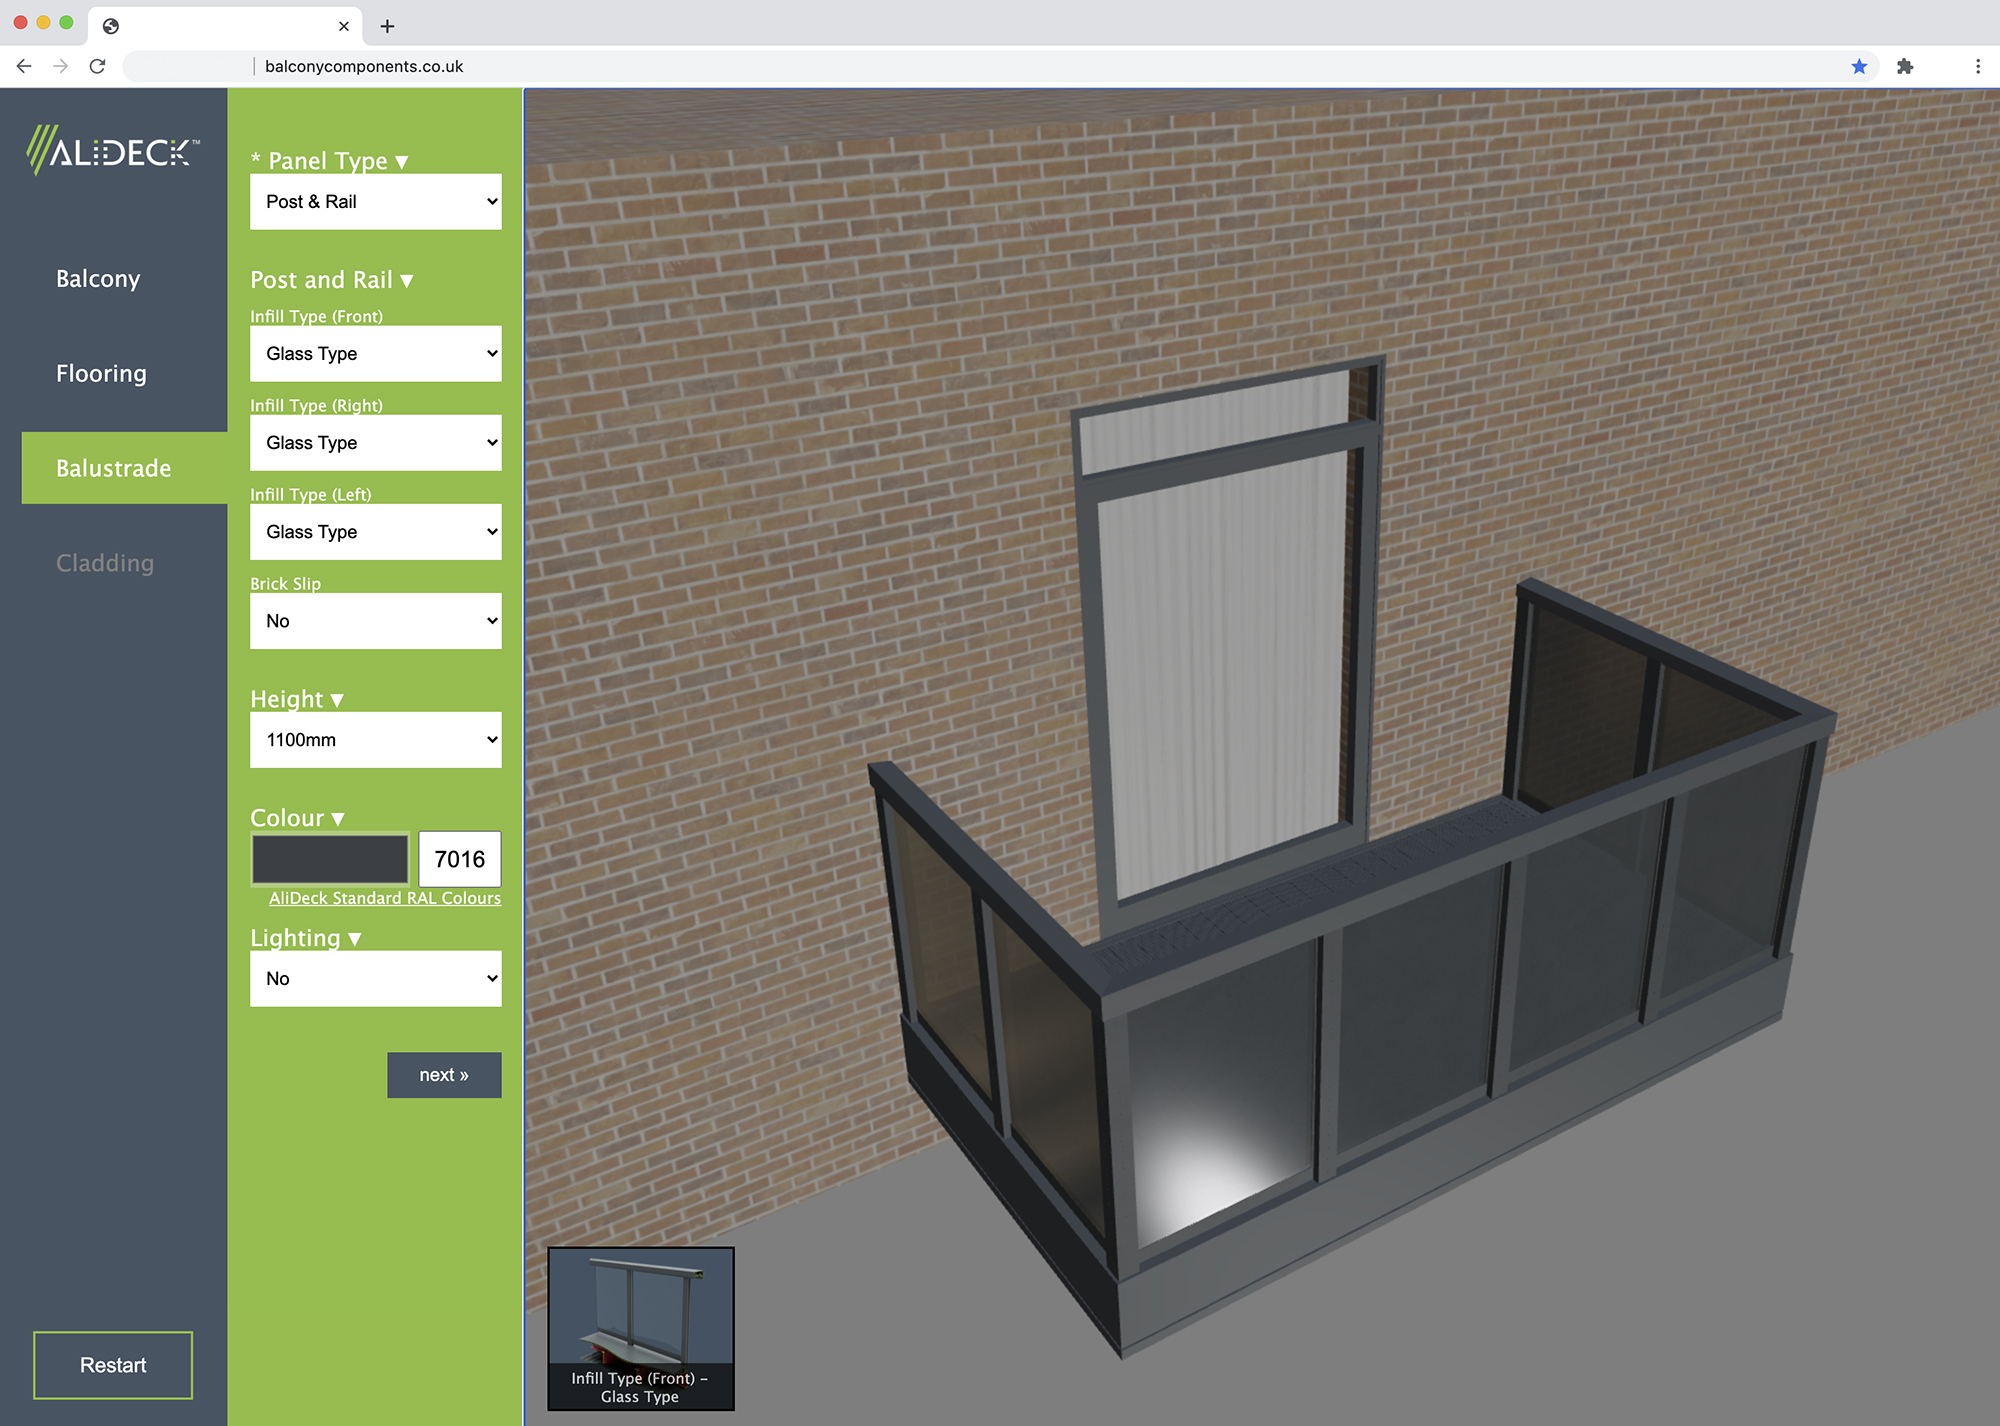 Aluminium decking experts AliDeck launch balcony configurator tool for architects